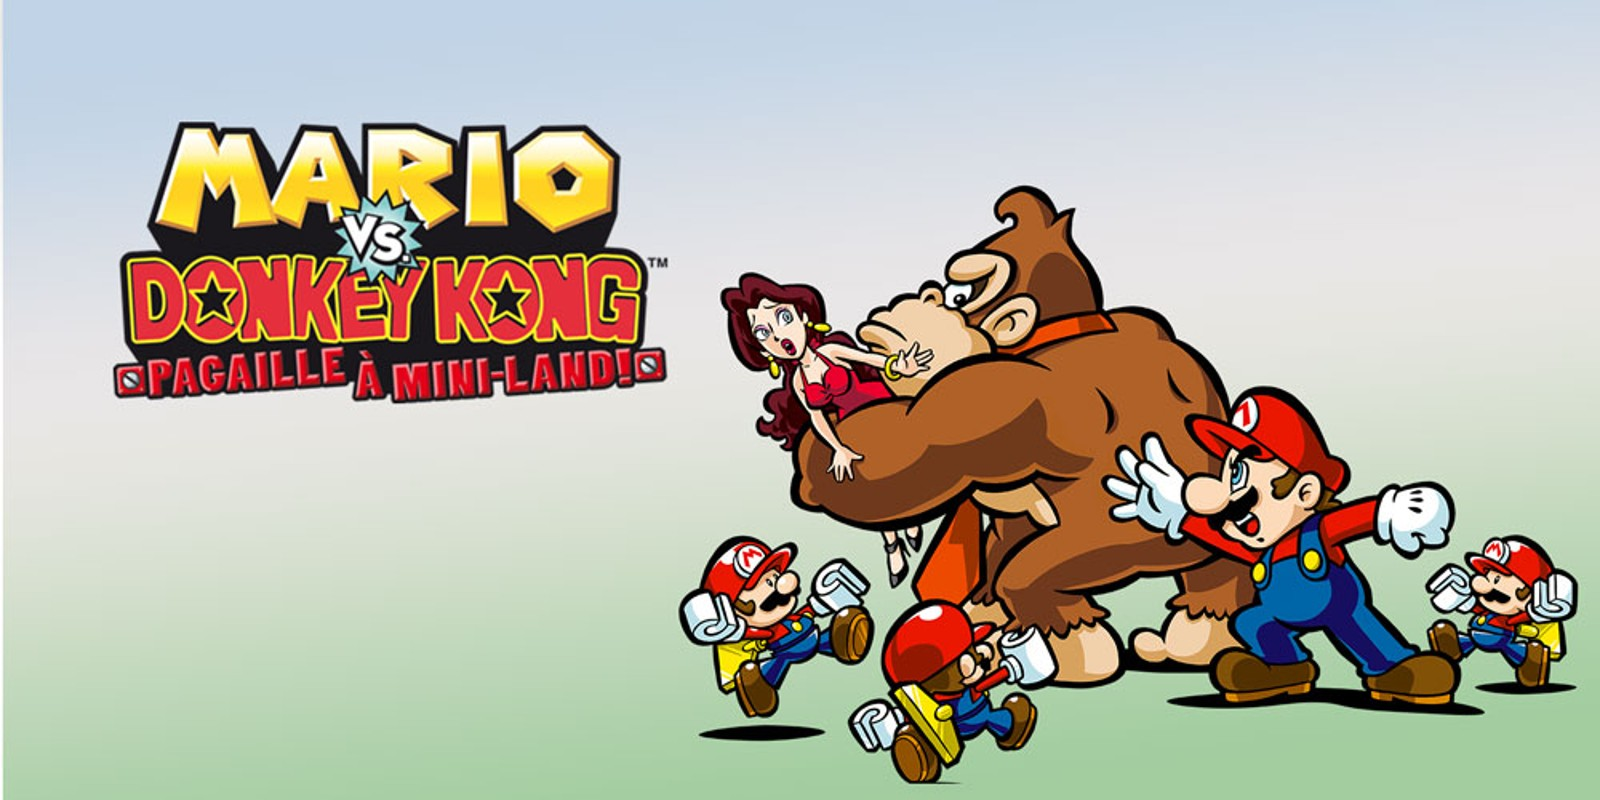 Mario vs. Donkey Kong: Pagaille à Mini-land!